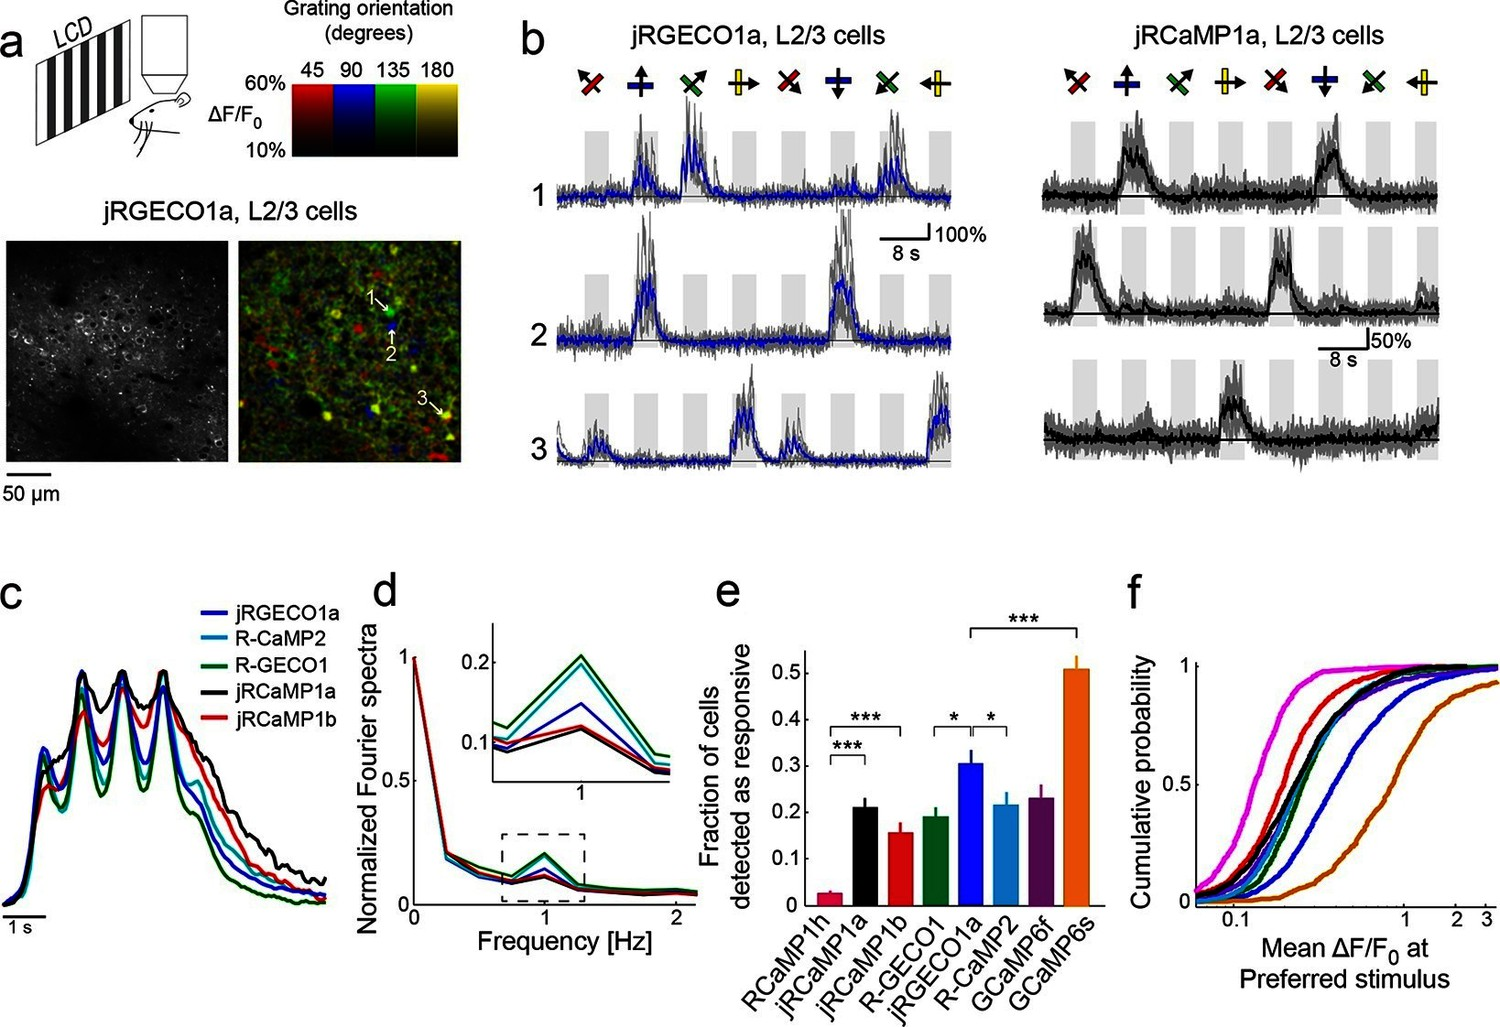 hight resolution of jrgeco1a and jrcamp1a and jrcamp1b performance in the mouse primary visual cortex